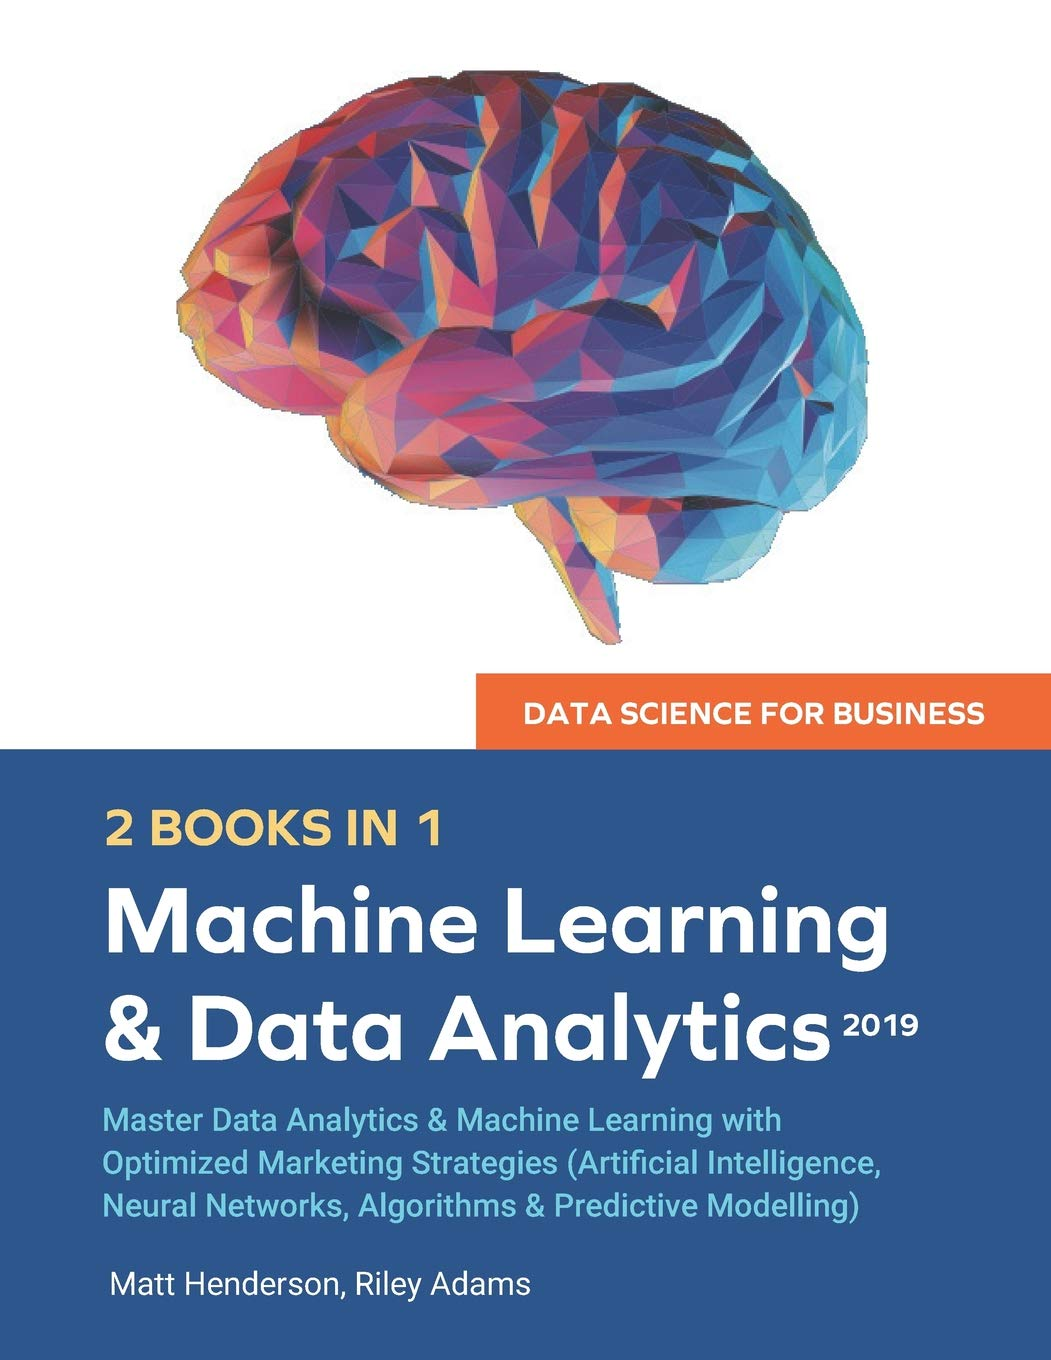 Data Science For Business 2019  2 BOOKS IN 1   Master Data Analytics And Machine Learning With Optimized Marketing Strategies  Artificial Intelligence Neural Networks Algorithms And Predictive Modelling